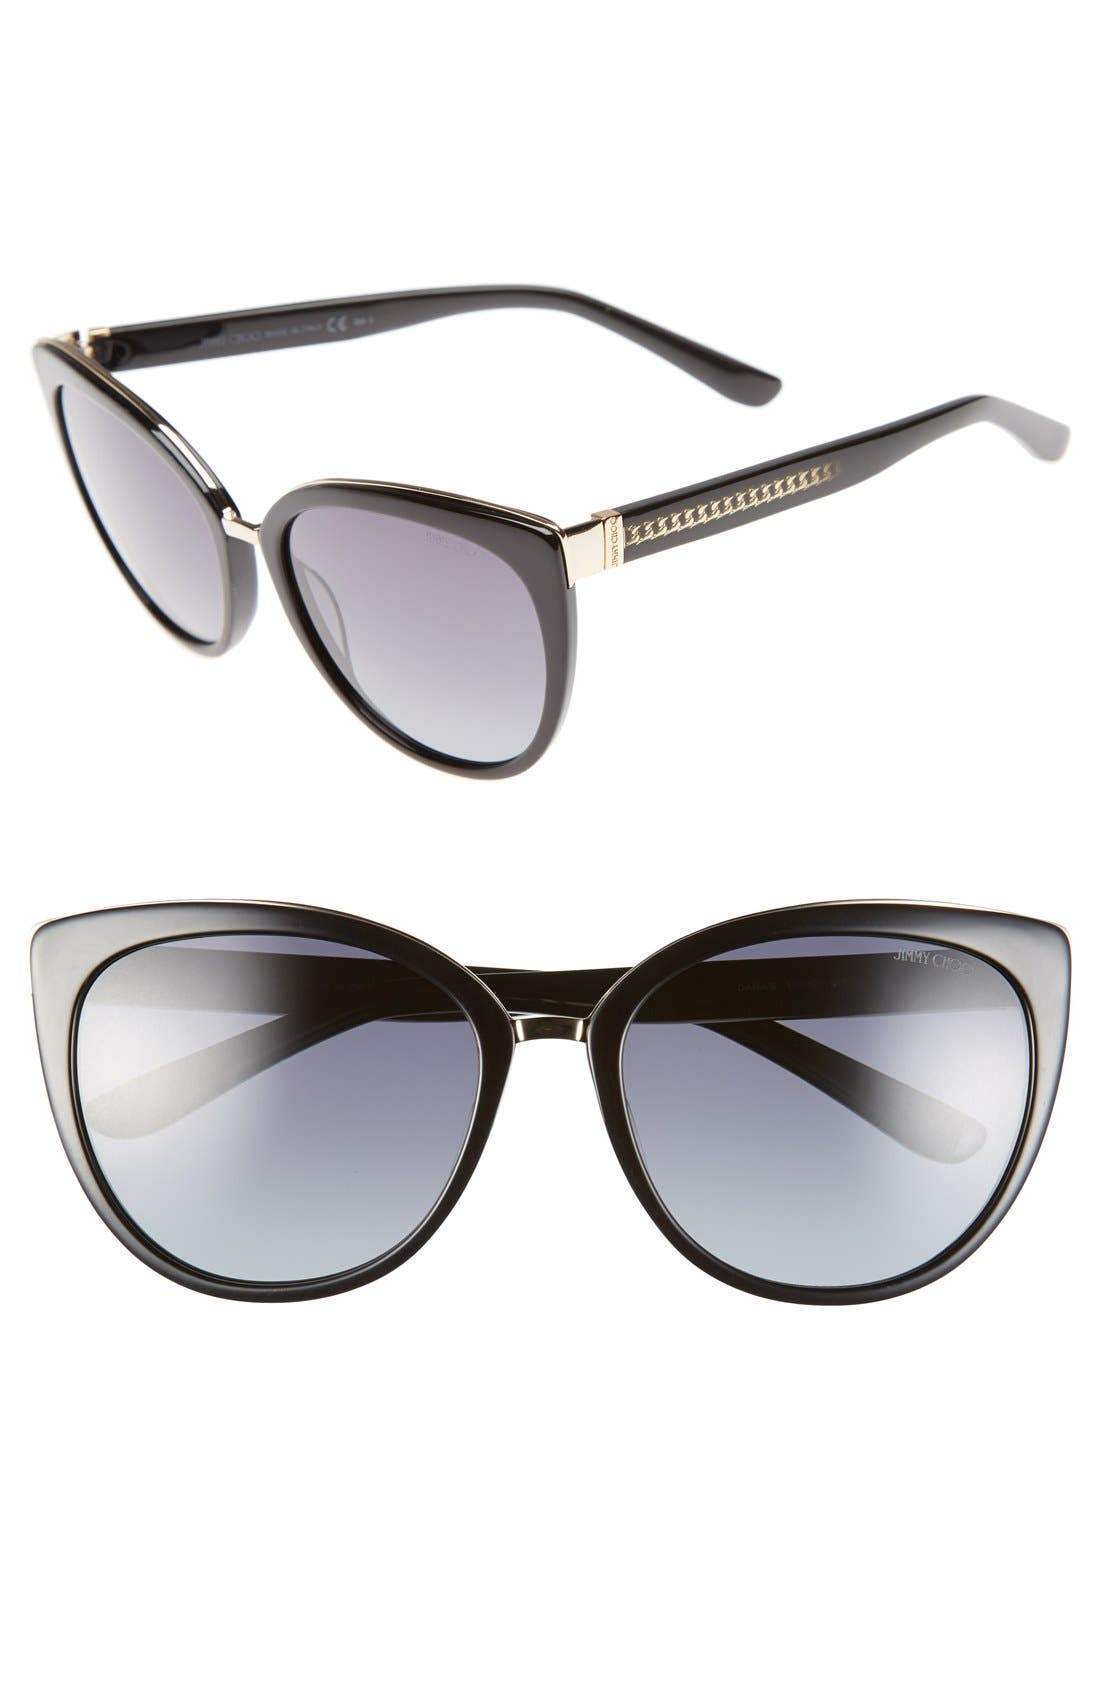 Alternate Image 1 Selected - Jimmy Choo 'Danas' 56mm Cat Eye Sunglasses